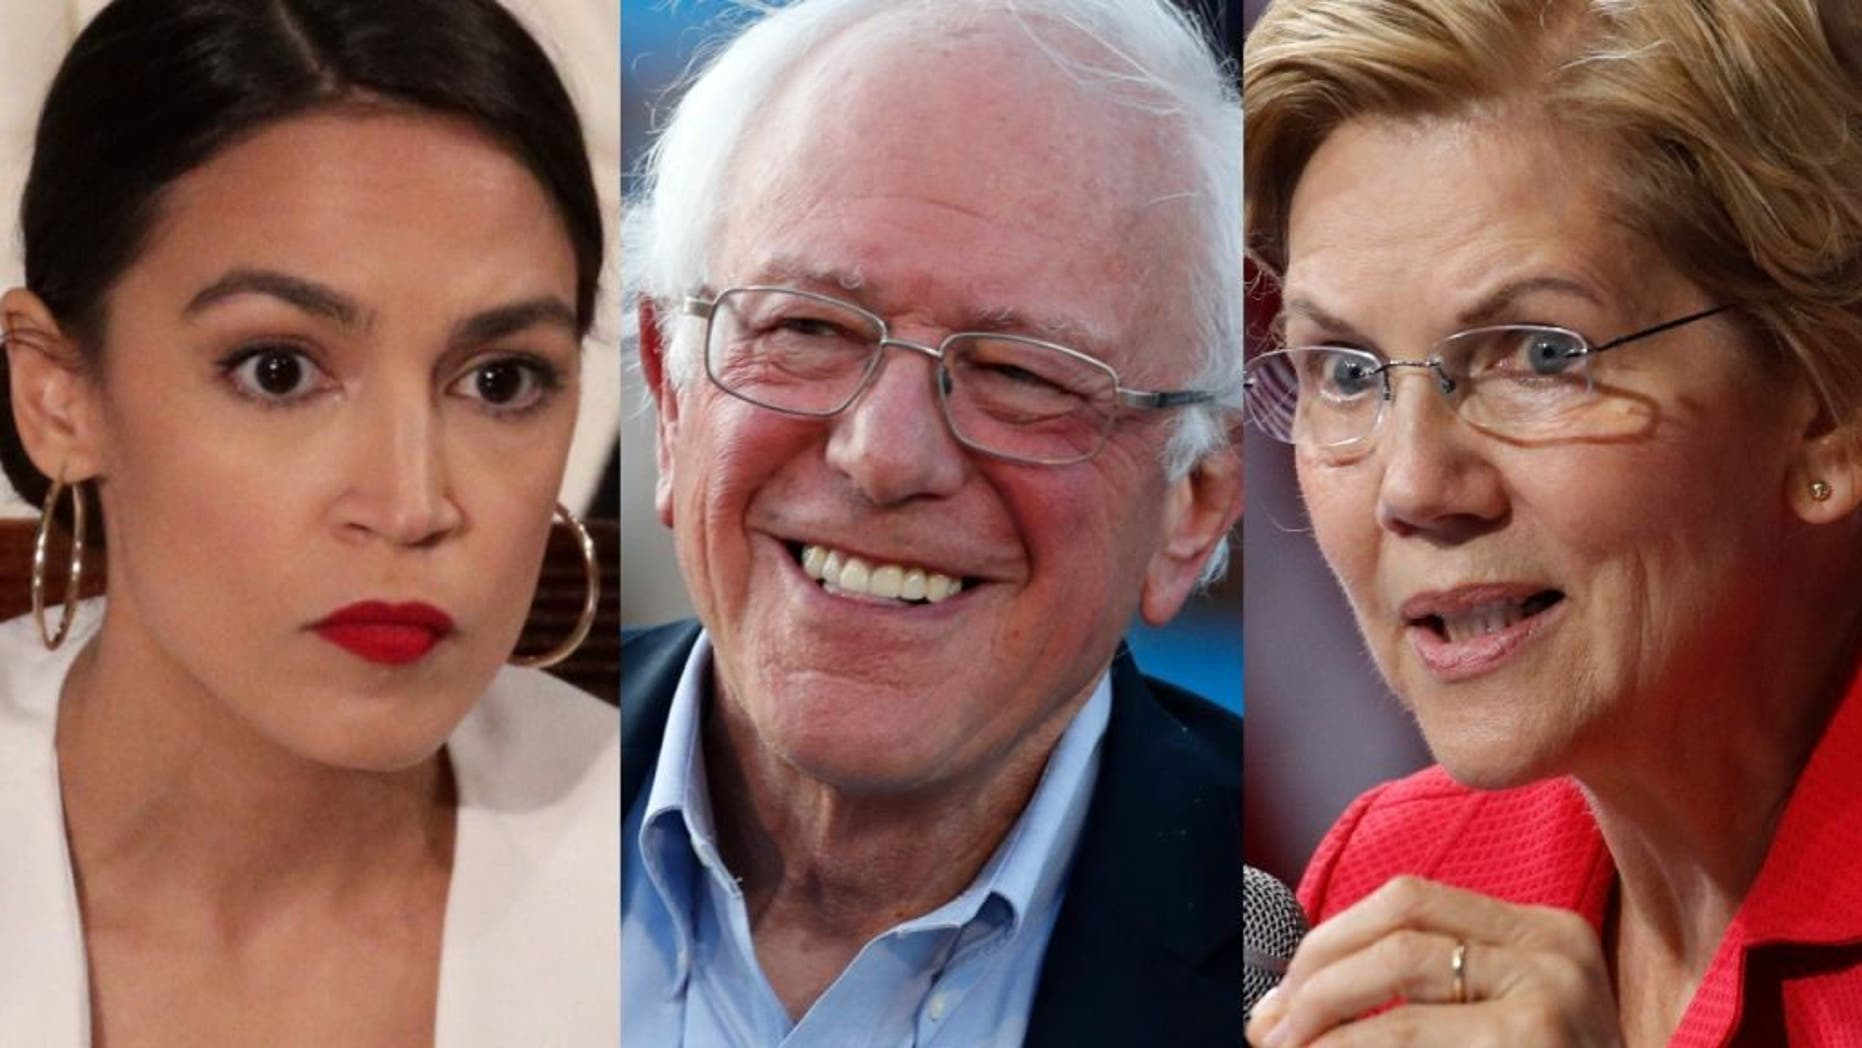 Westlake Legal Group AOCSandersWarren101619 Warren attacked from all sides at Dem debate; 'Squad' to back Sanders; Biden says focus on Trump fox-news/columns/fox-news-first fox news fnc/us fnc e3856332-3802-52e8-adf5-320053ff3889 article